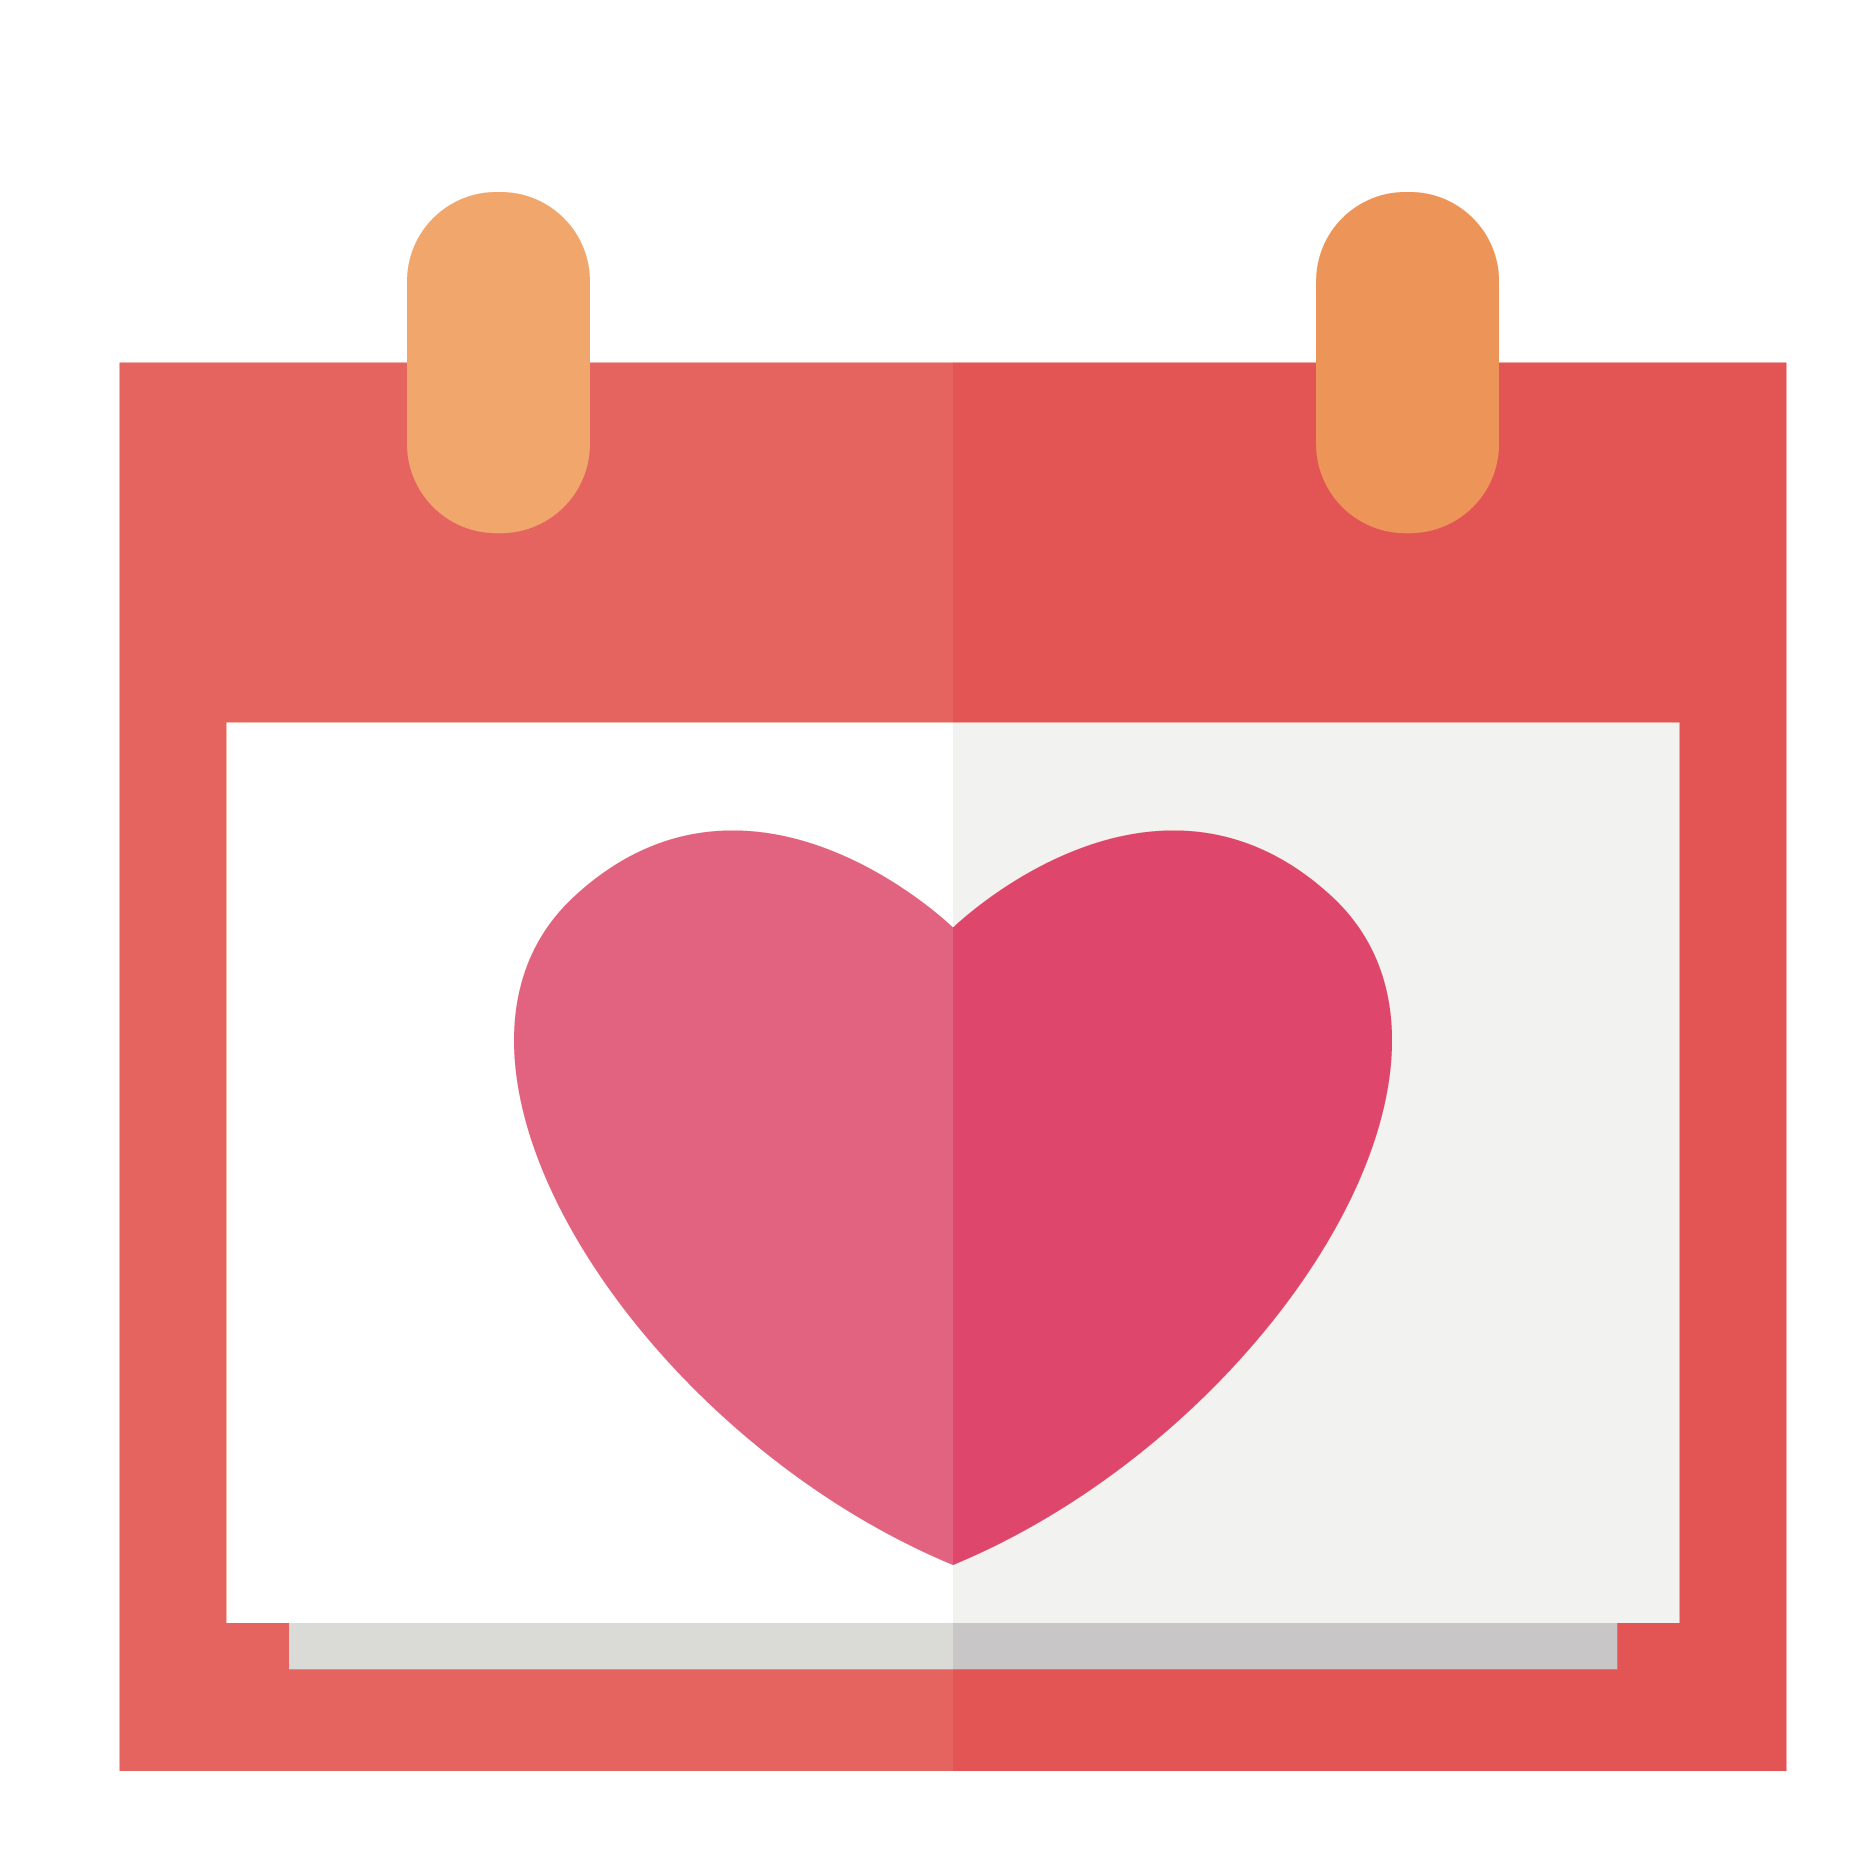 Heart with heartbeat clipart download Euclidean vector Clip art - Vector Heart Calendar 1875*1875 ... download